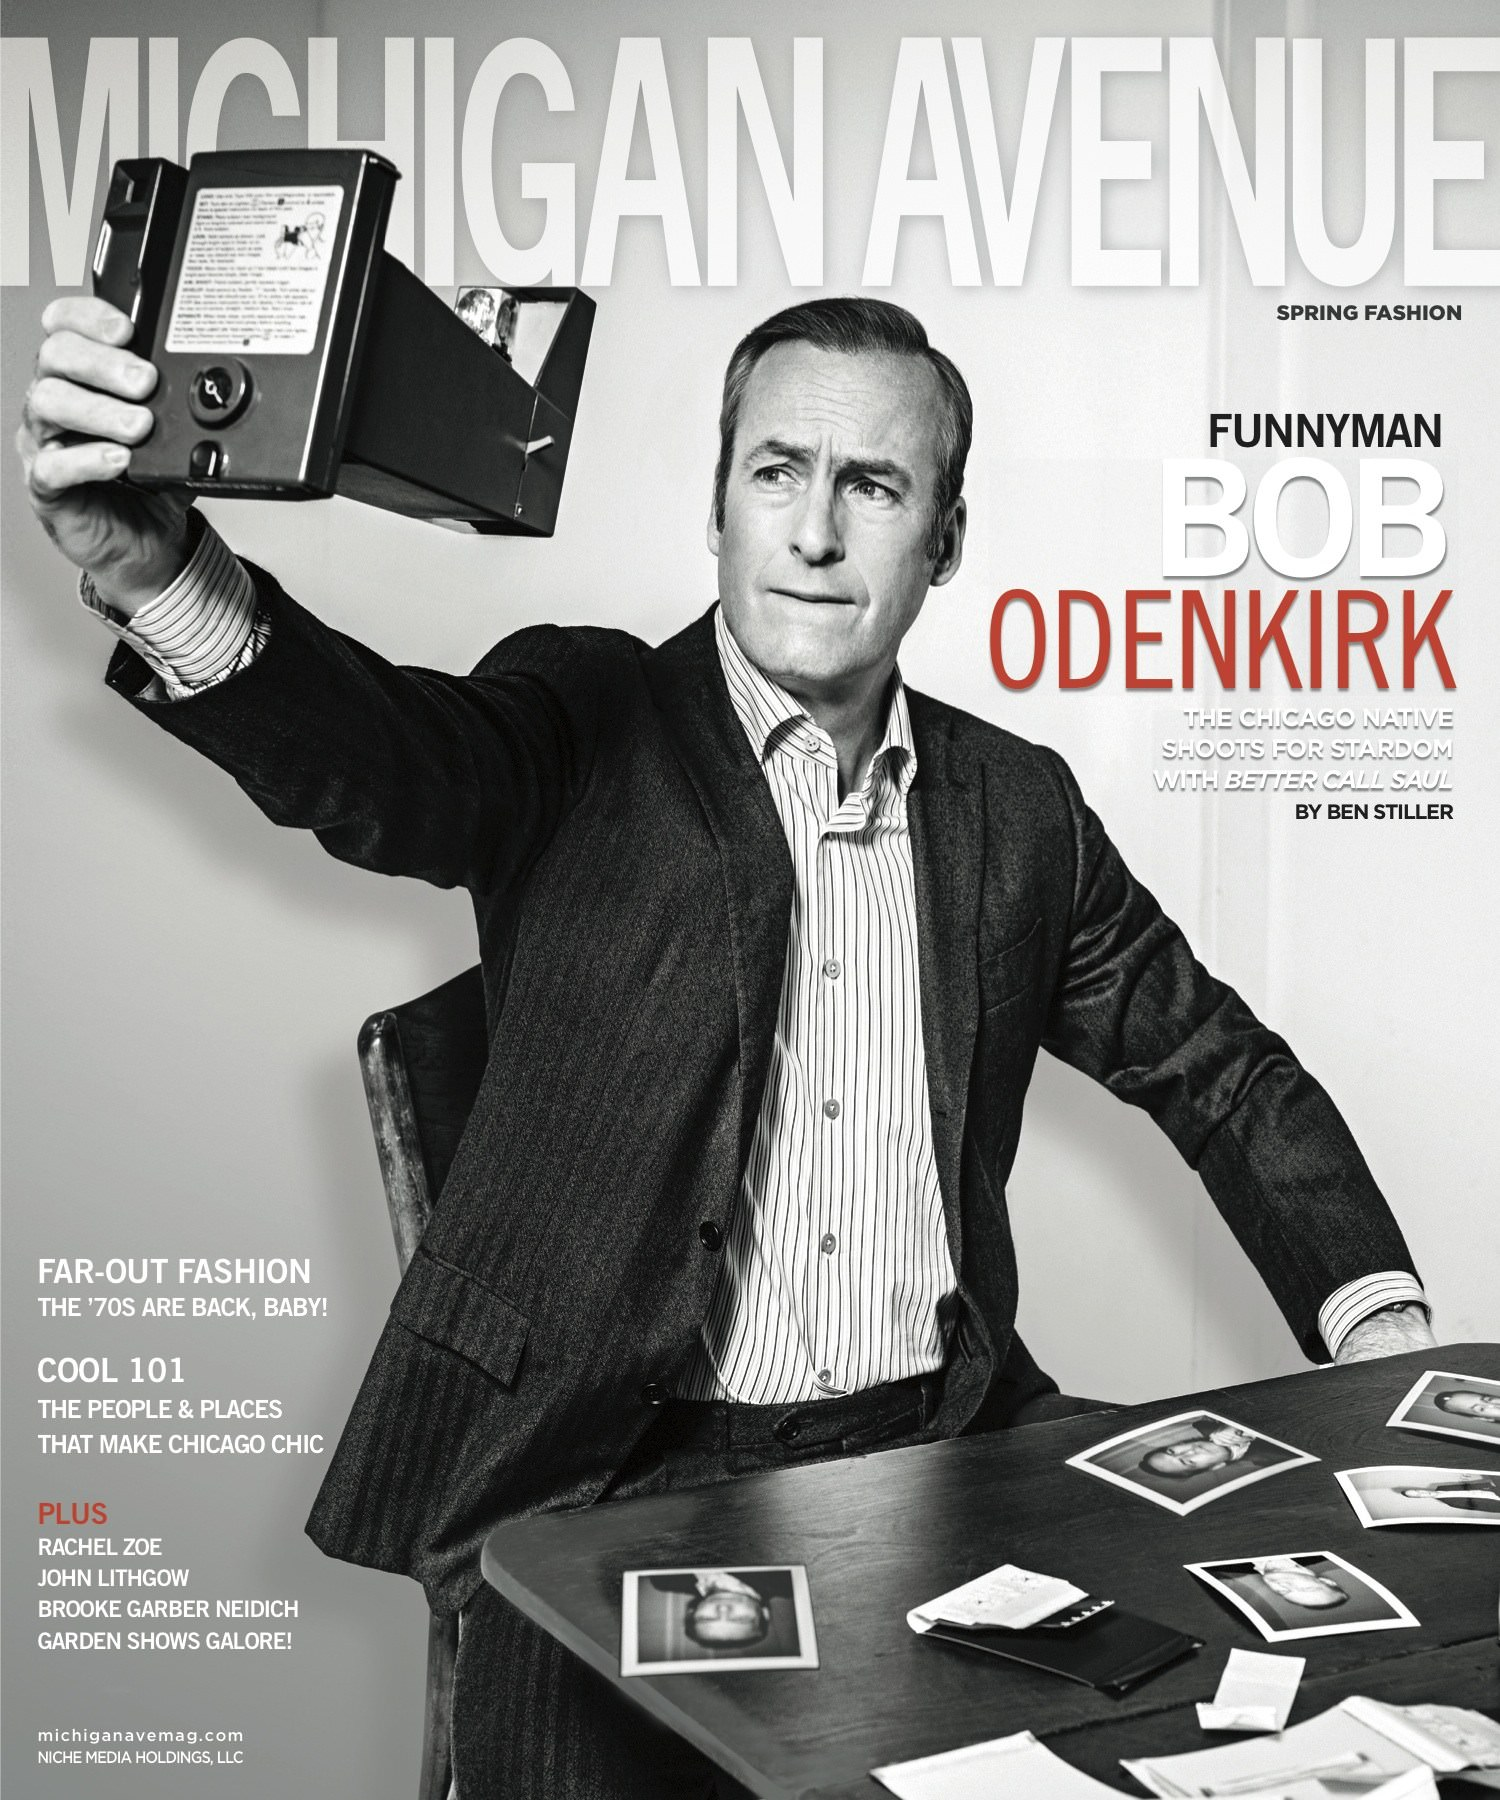 Bob Odenkirk by Rainer Hosch for Michigan Avenue Magazine9.jpg